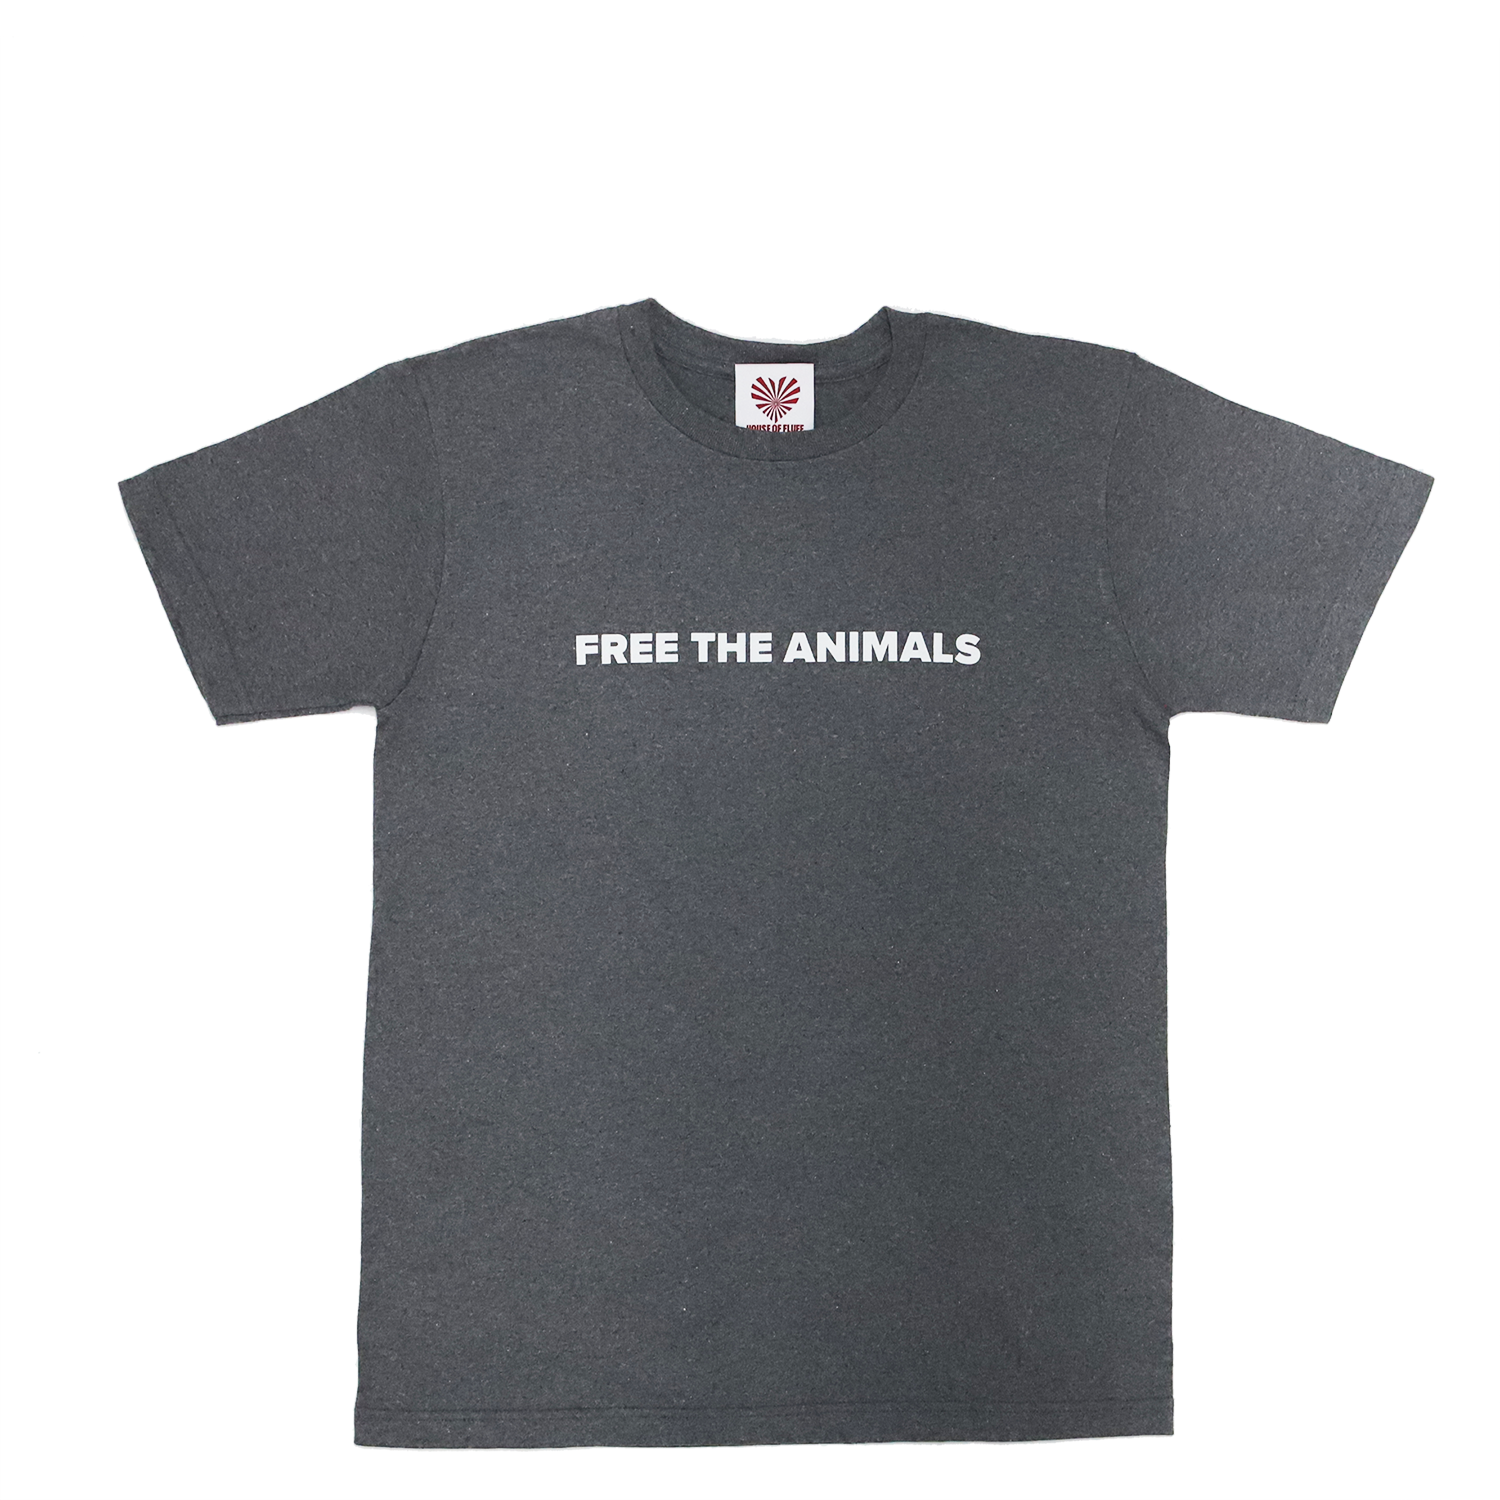 products/15-GREY-TEE-FRONT_0b721df6-03d7-43fb-9a40-e0cc919cfc16.png